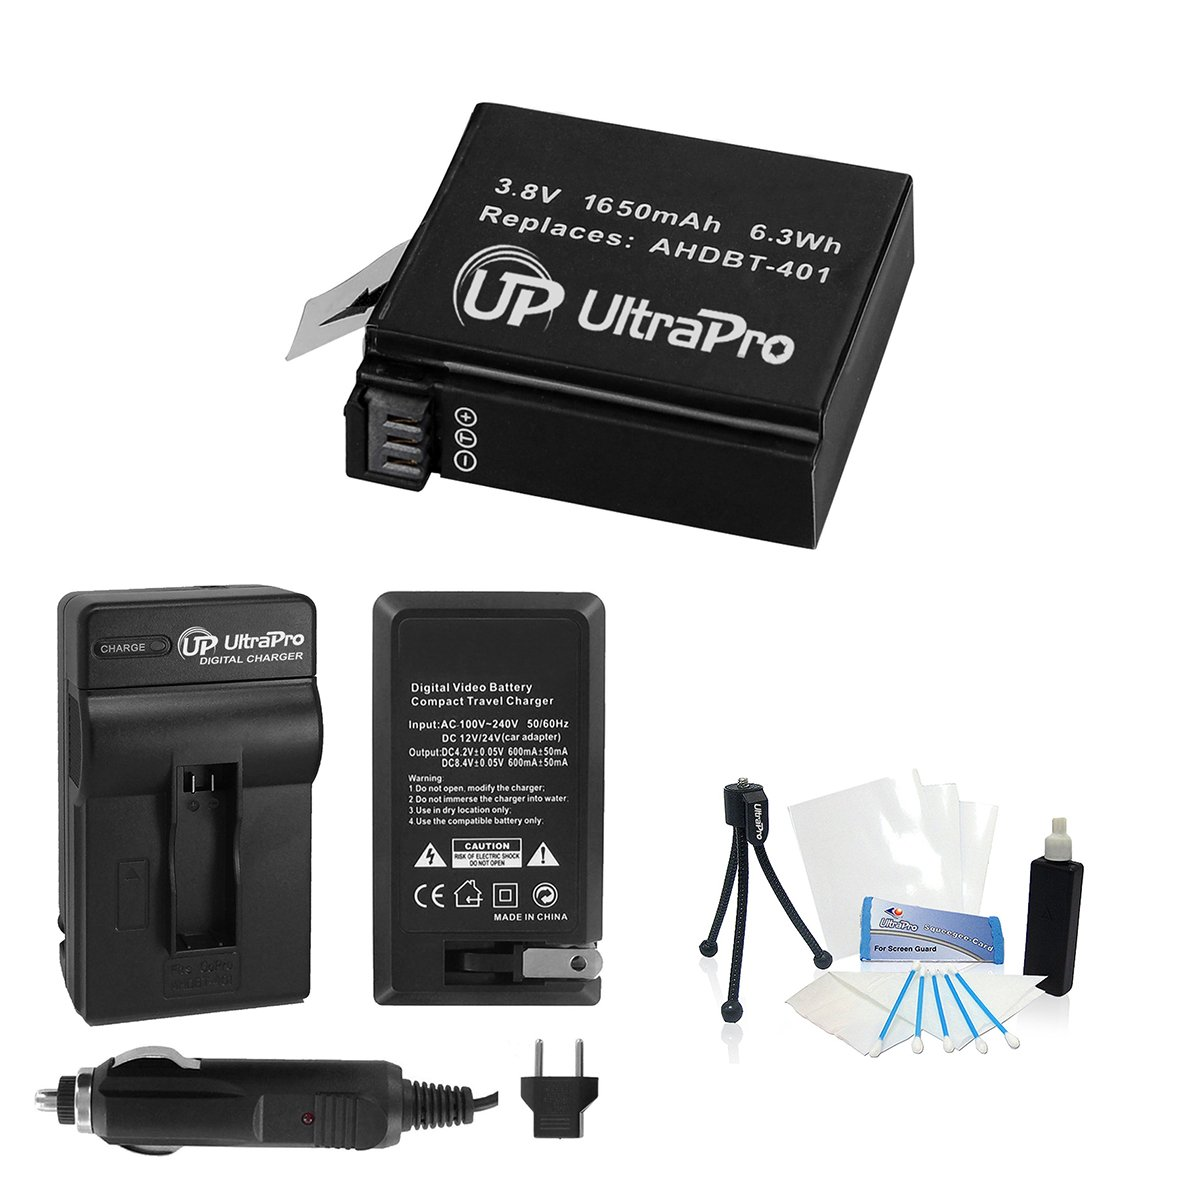 UltraPro AHDBT-401 High-Capacity Replacement Battery with Rapid Travel Charger for GoPro Hero4 Black, Hero 4 Silver Digital Cameras. Bundle Includes UltraPro Accessory Set